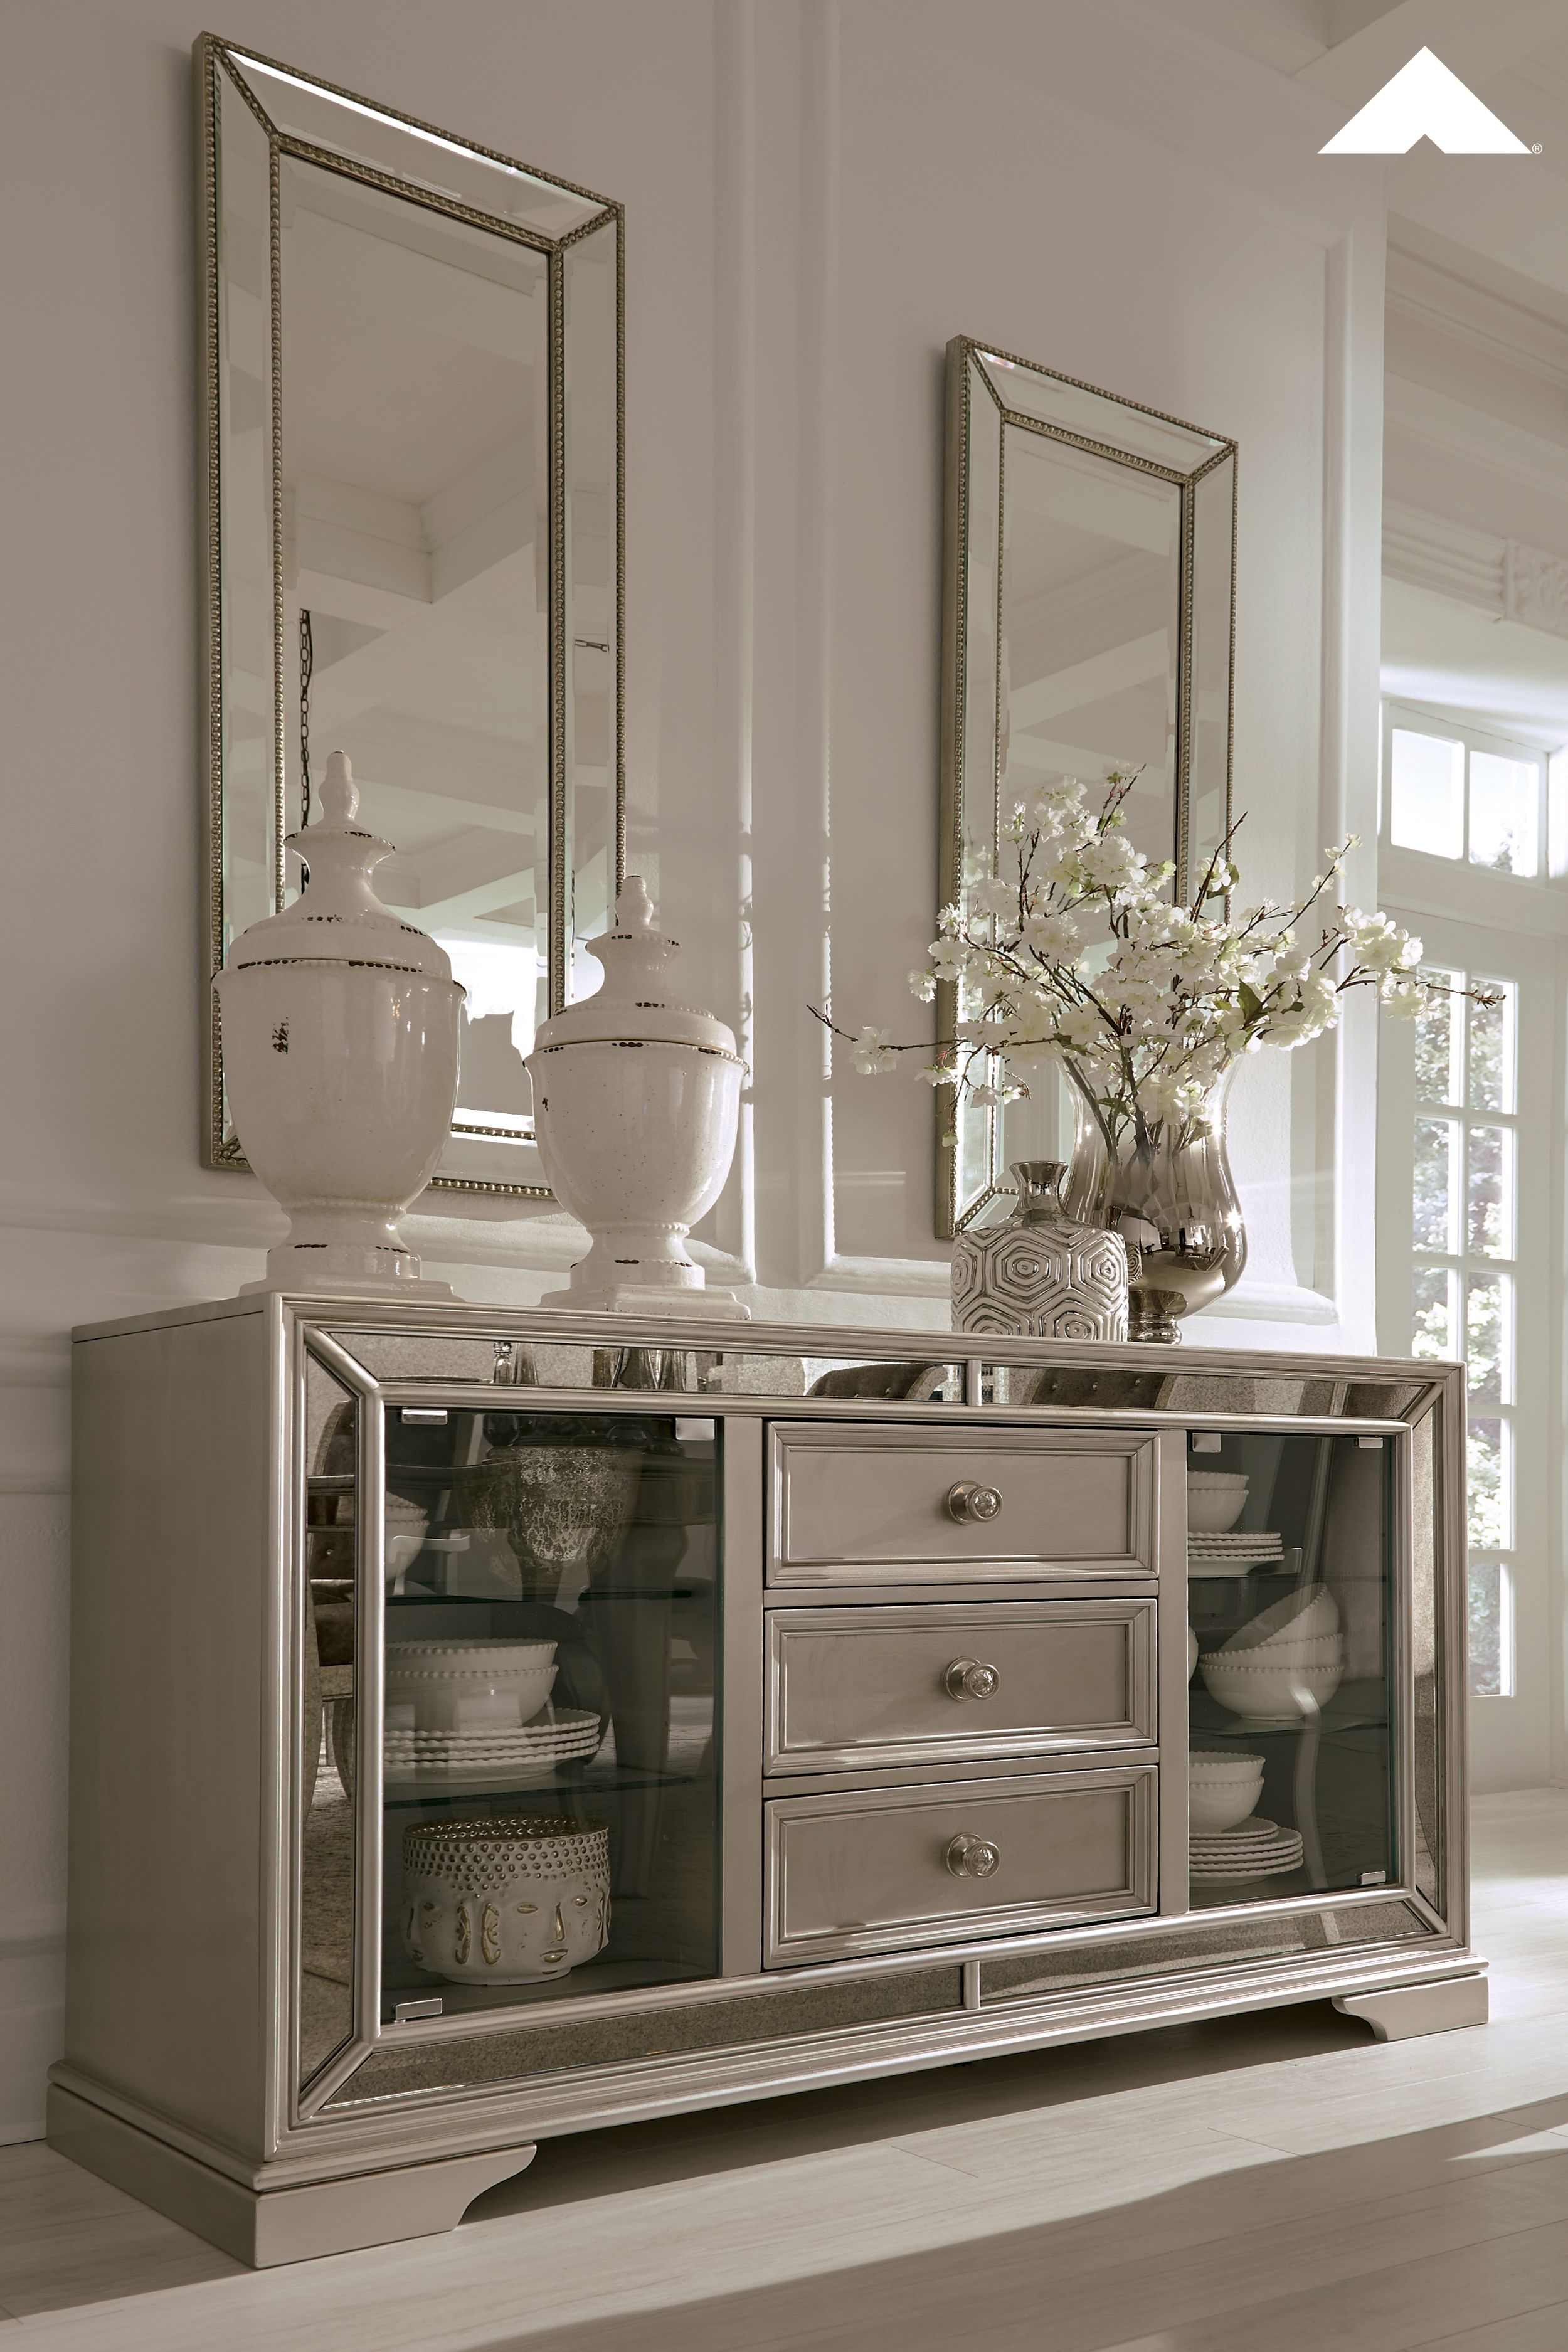 Coralayne Silver Dining Room Server By Ashley Furniture Ashleyfurniture Homedecor Ashley Furniture Dining Room Dining Room Server Ashley Furniture Dining